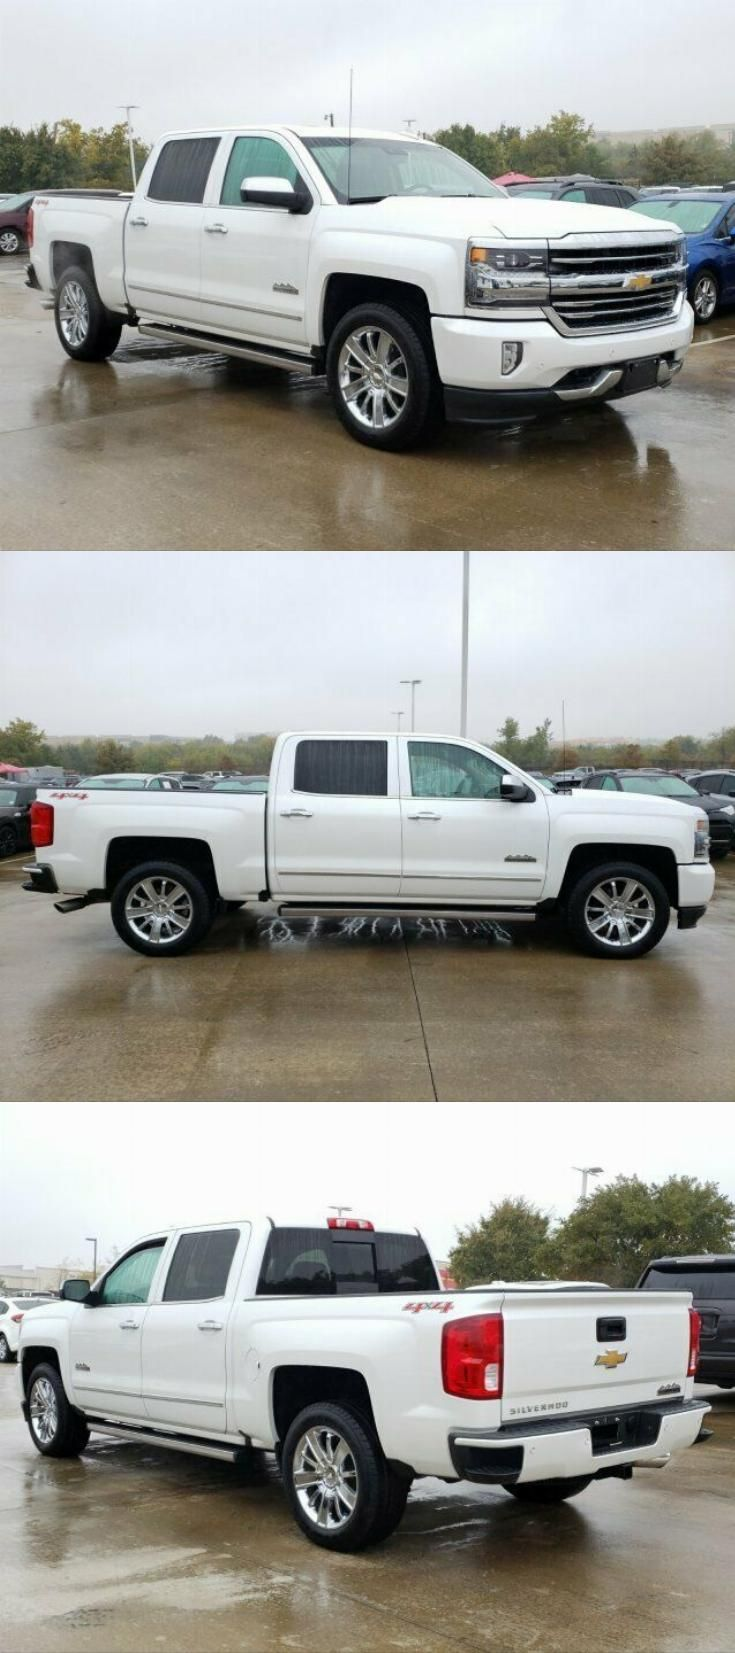 Well Equipped 2016 Chevrolet Silverado 1500 High Country Crew Cab Silverado High Country Chevy Silverado High Country Chevrolet Silverado 1500